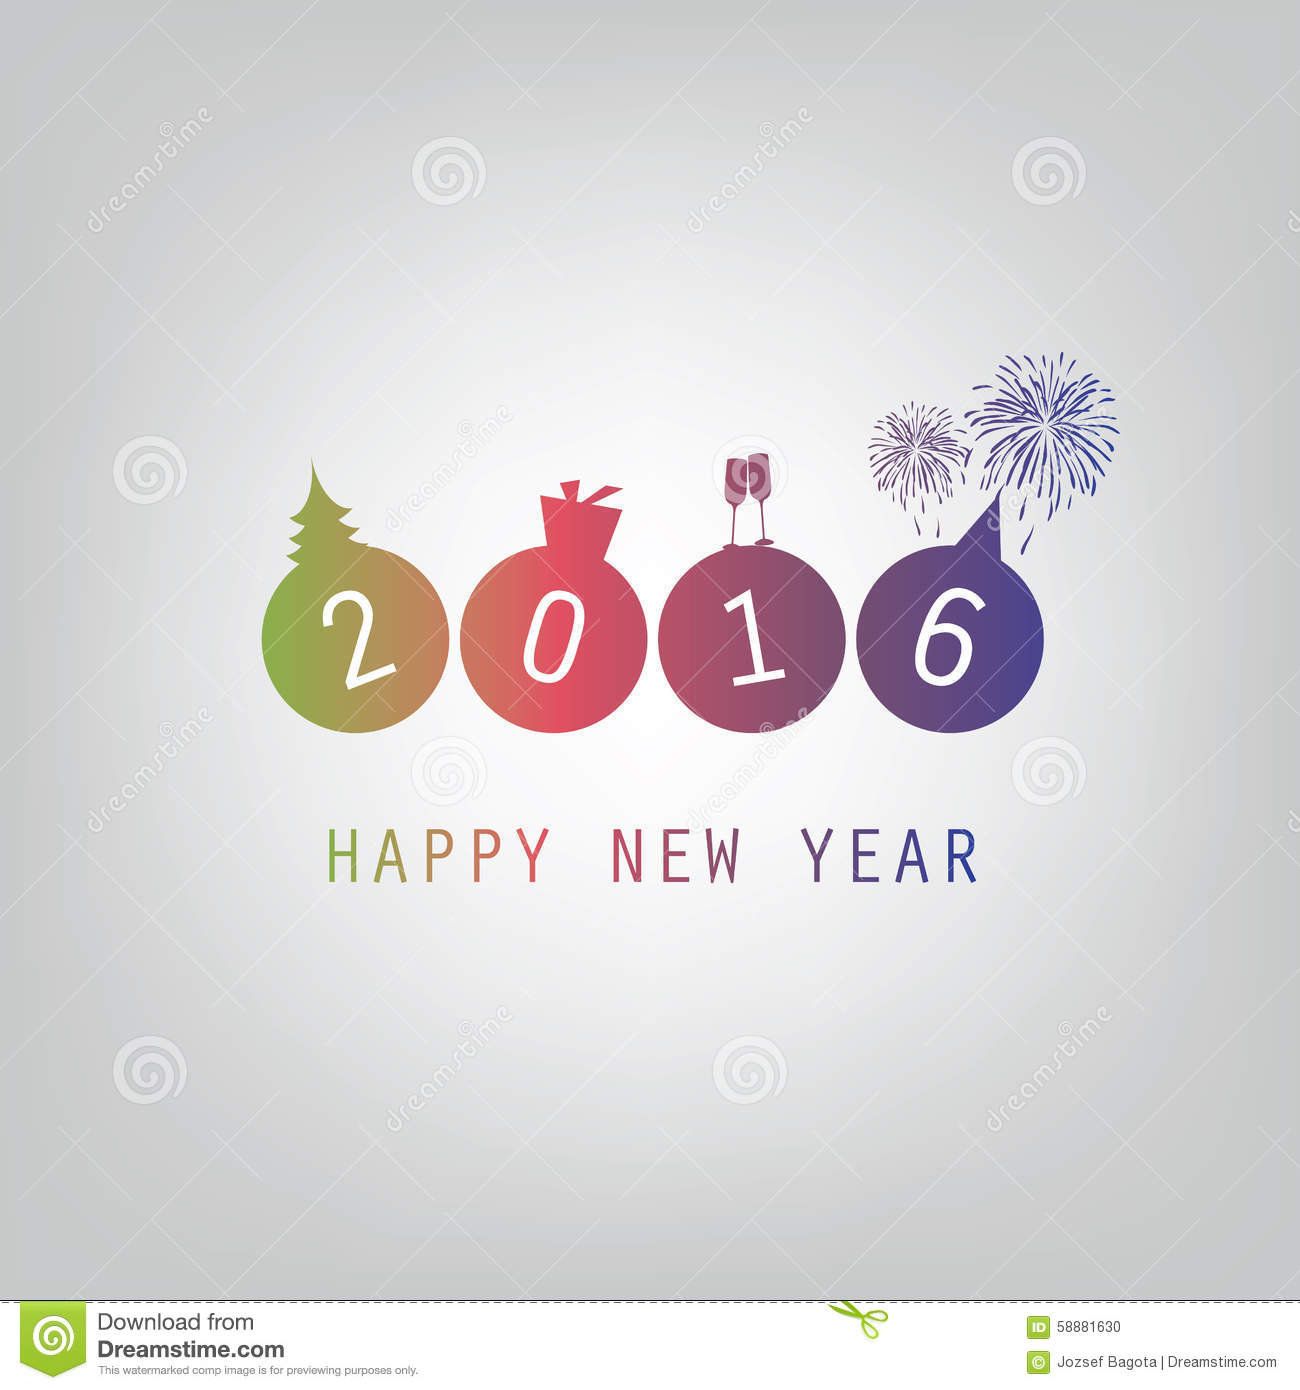 best wishes modern simple minimal happy new year card or cover